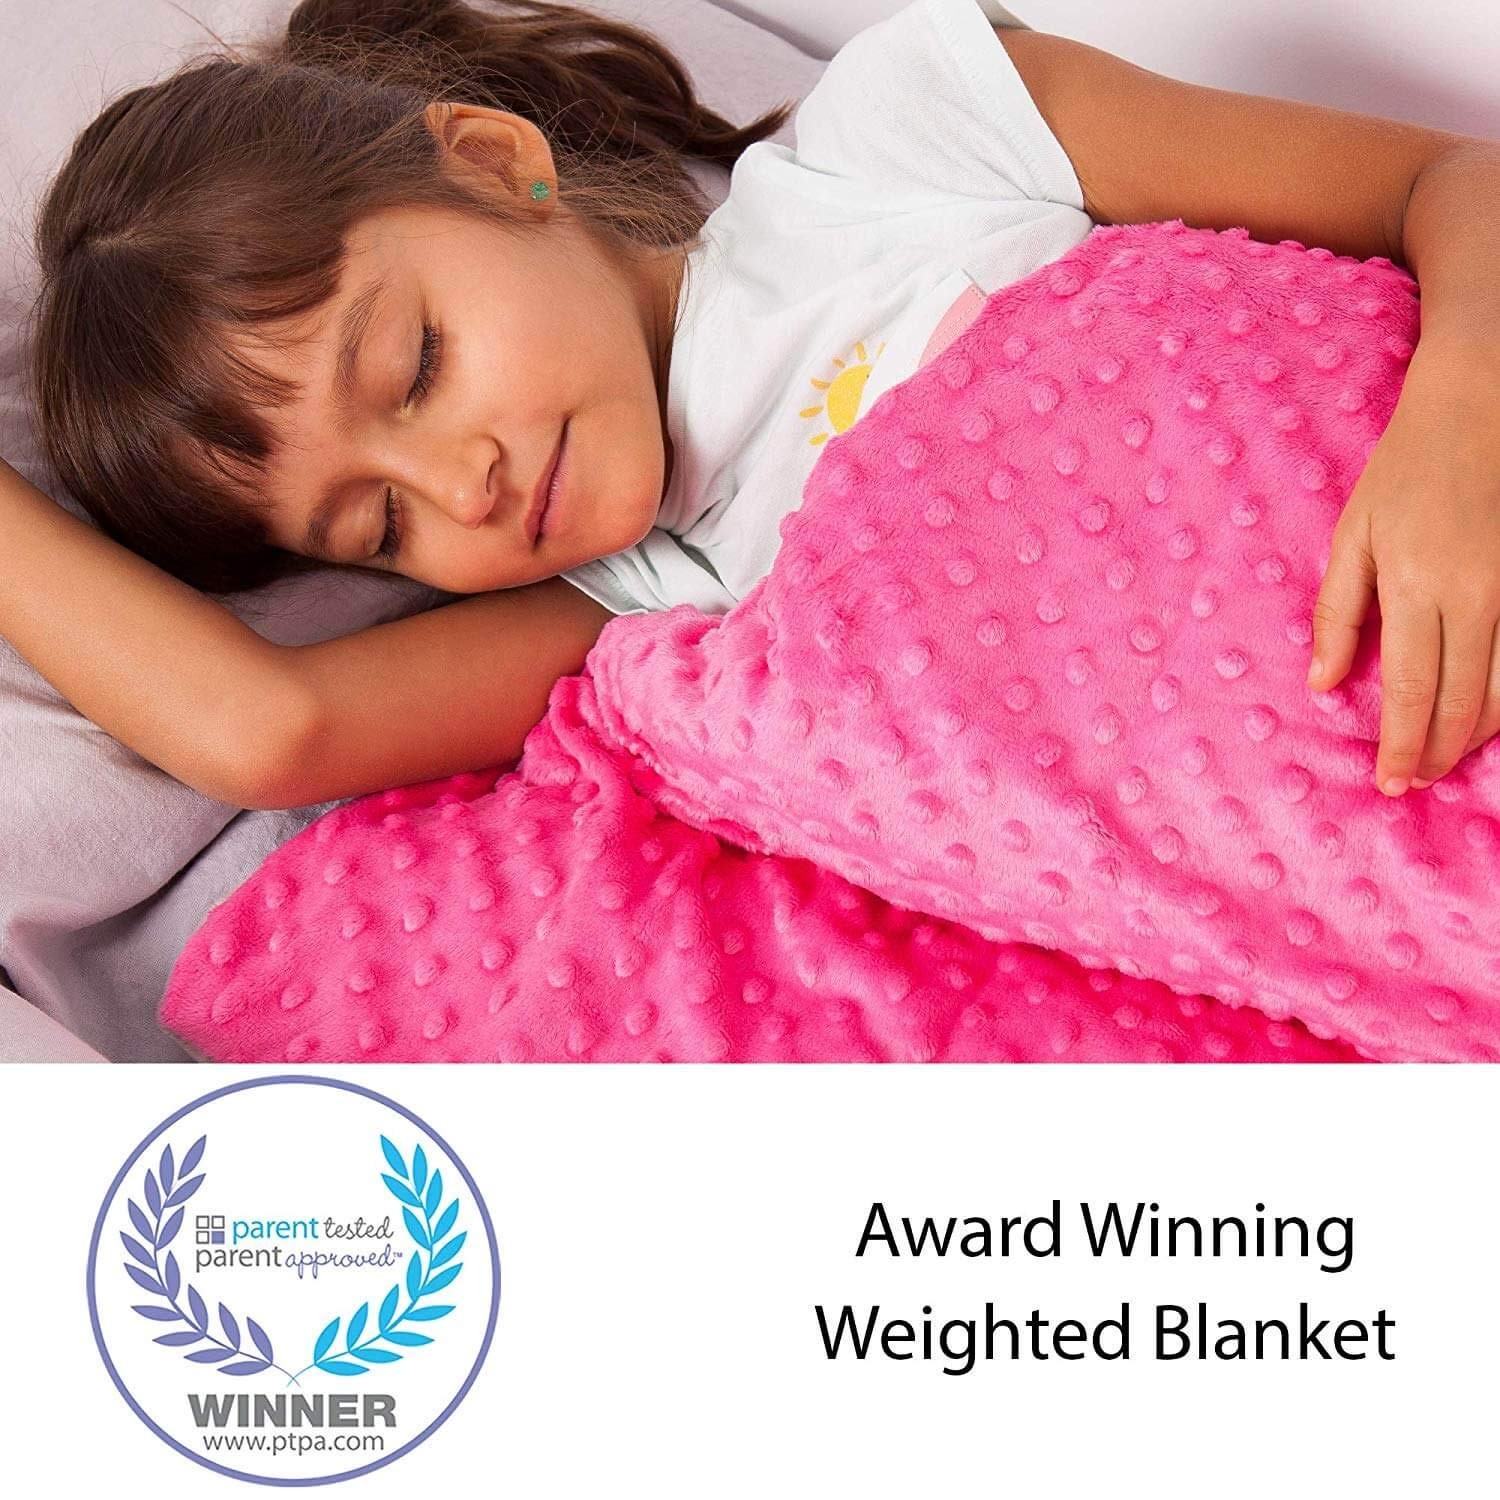 Supersoft 5 Lbs Calming Weighted Blanket for Kids - 36'' x 48'' Children Heavy Blanket for Sleeping with Minky Cover - Pink Kid Comfort Sensory Blankets for Girls by Hazli